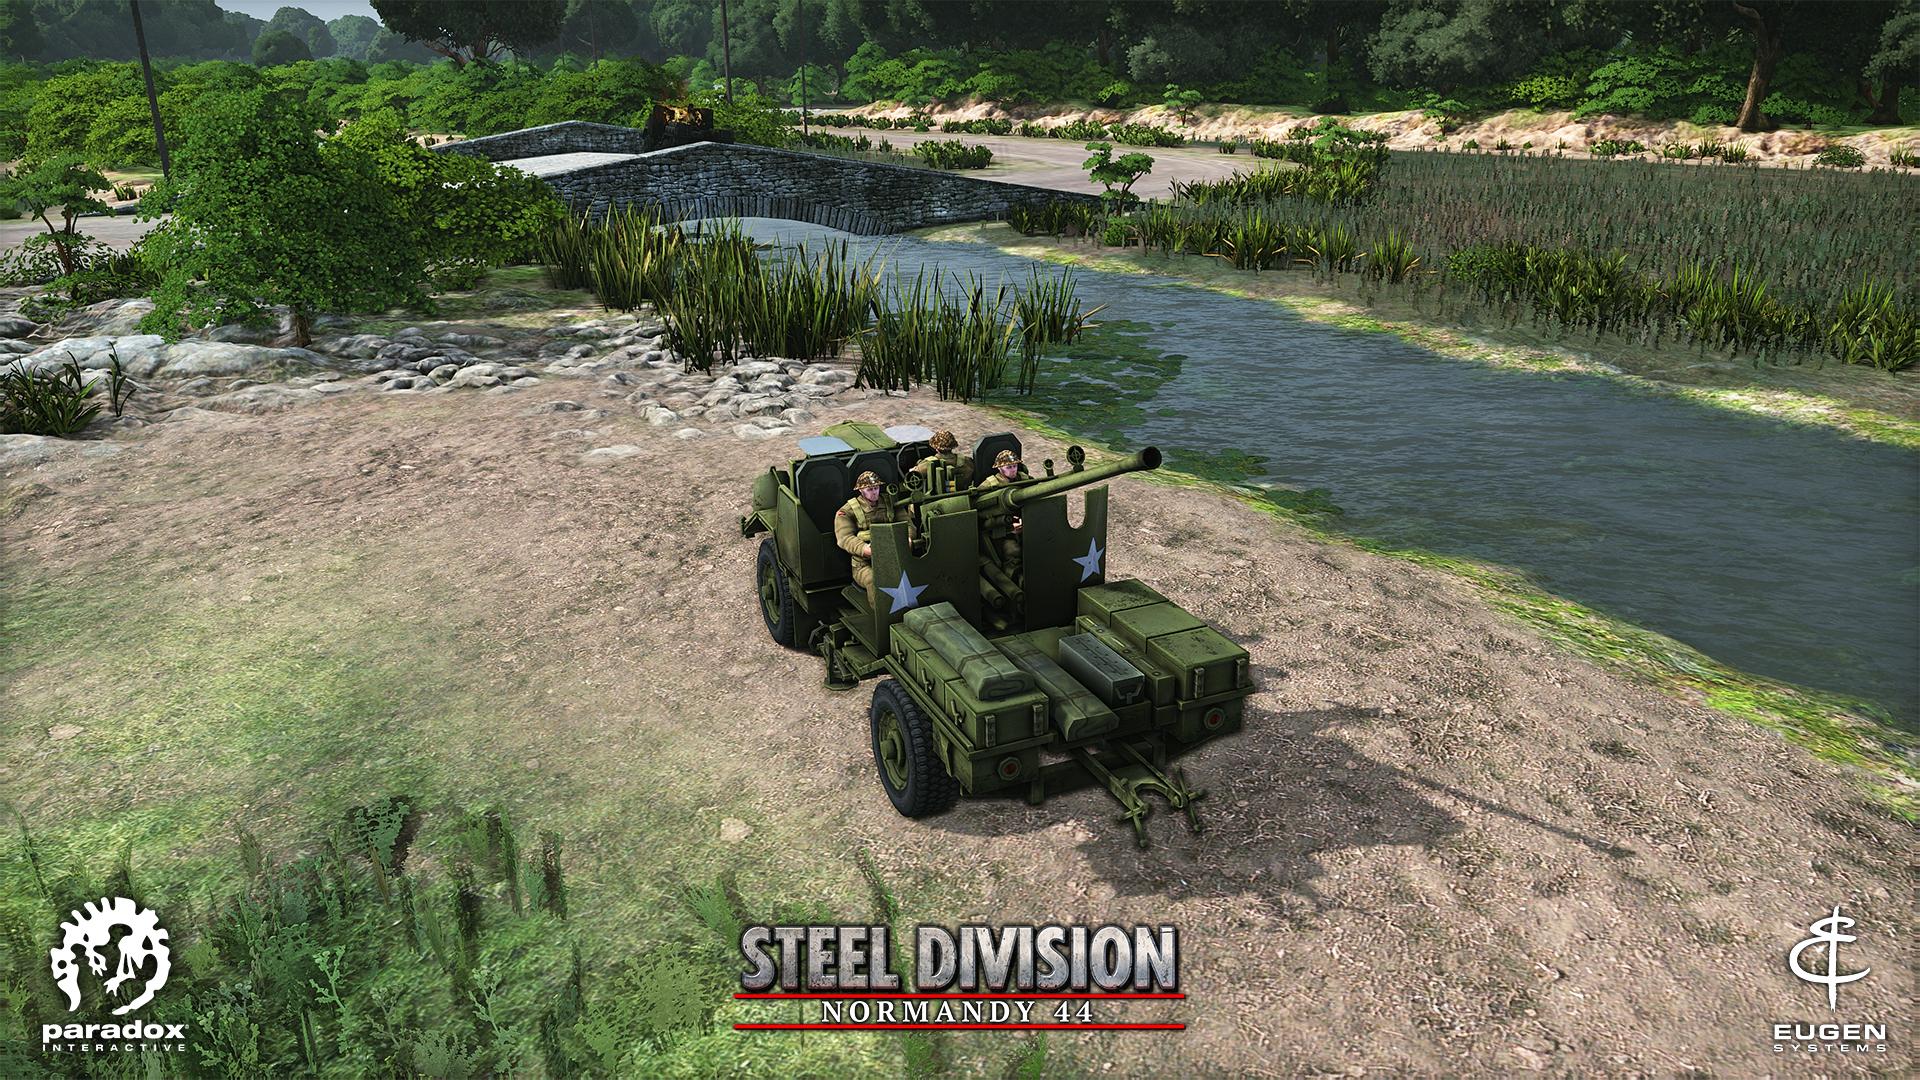 Steel Division: Normandy 44 - AA Bofors 440mm SP